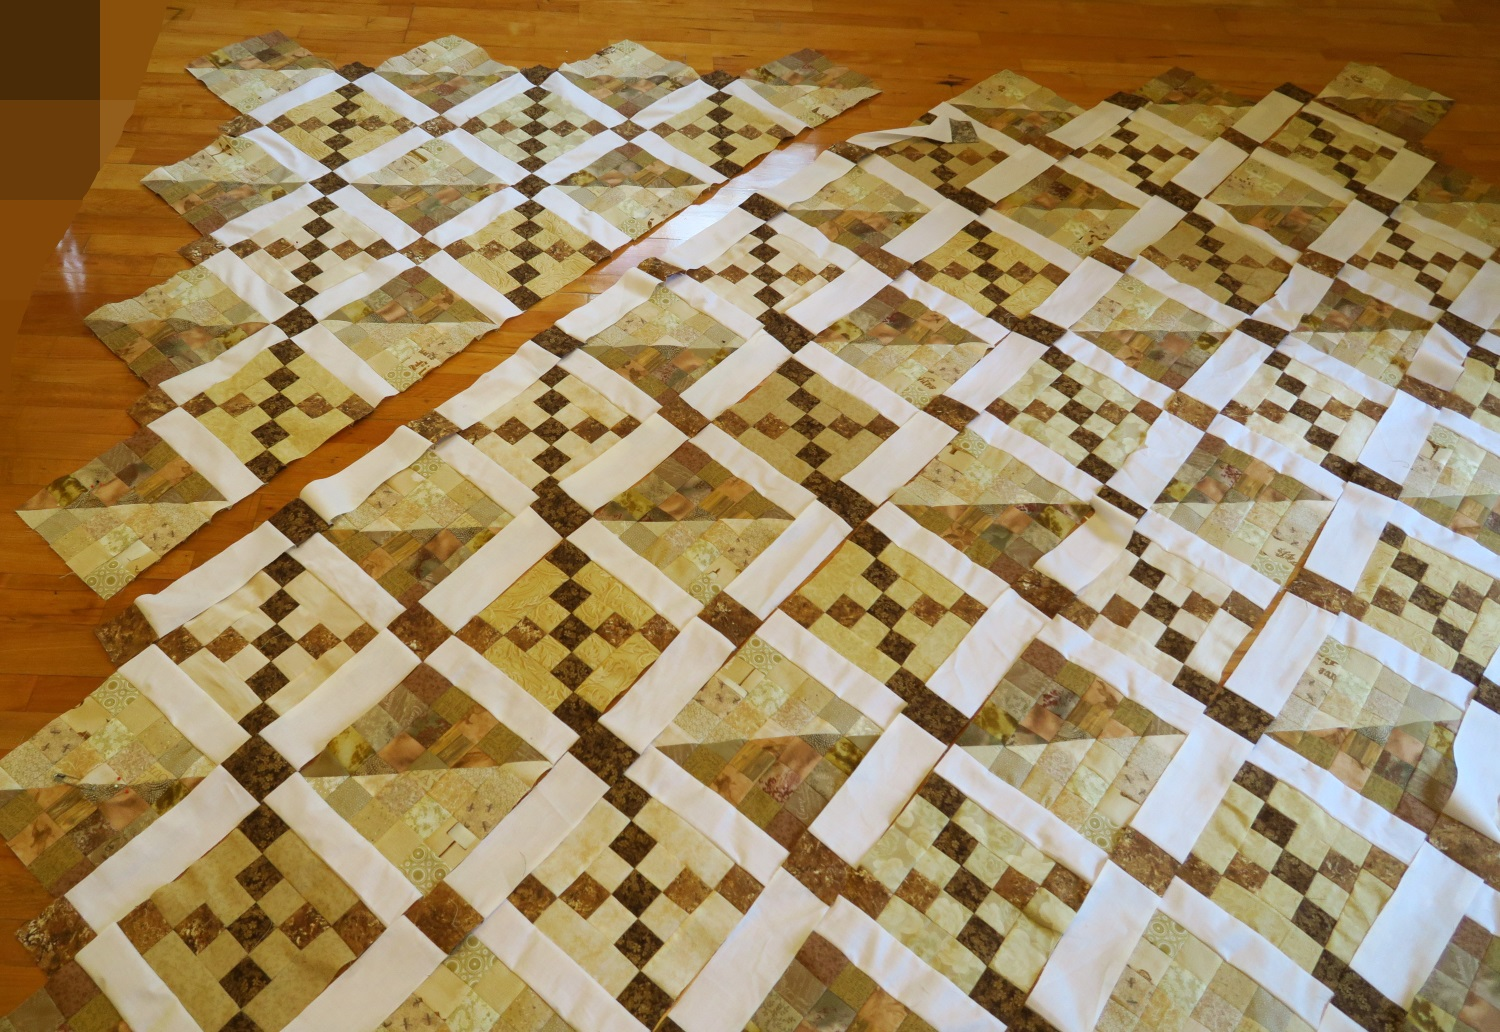 The first few rows are sewn together